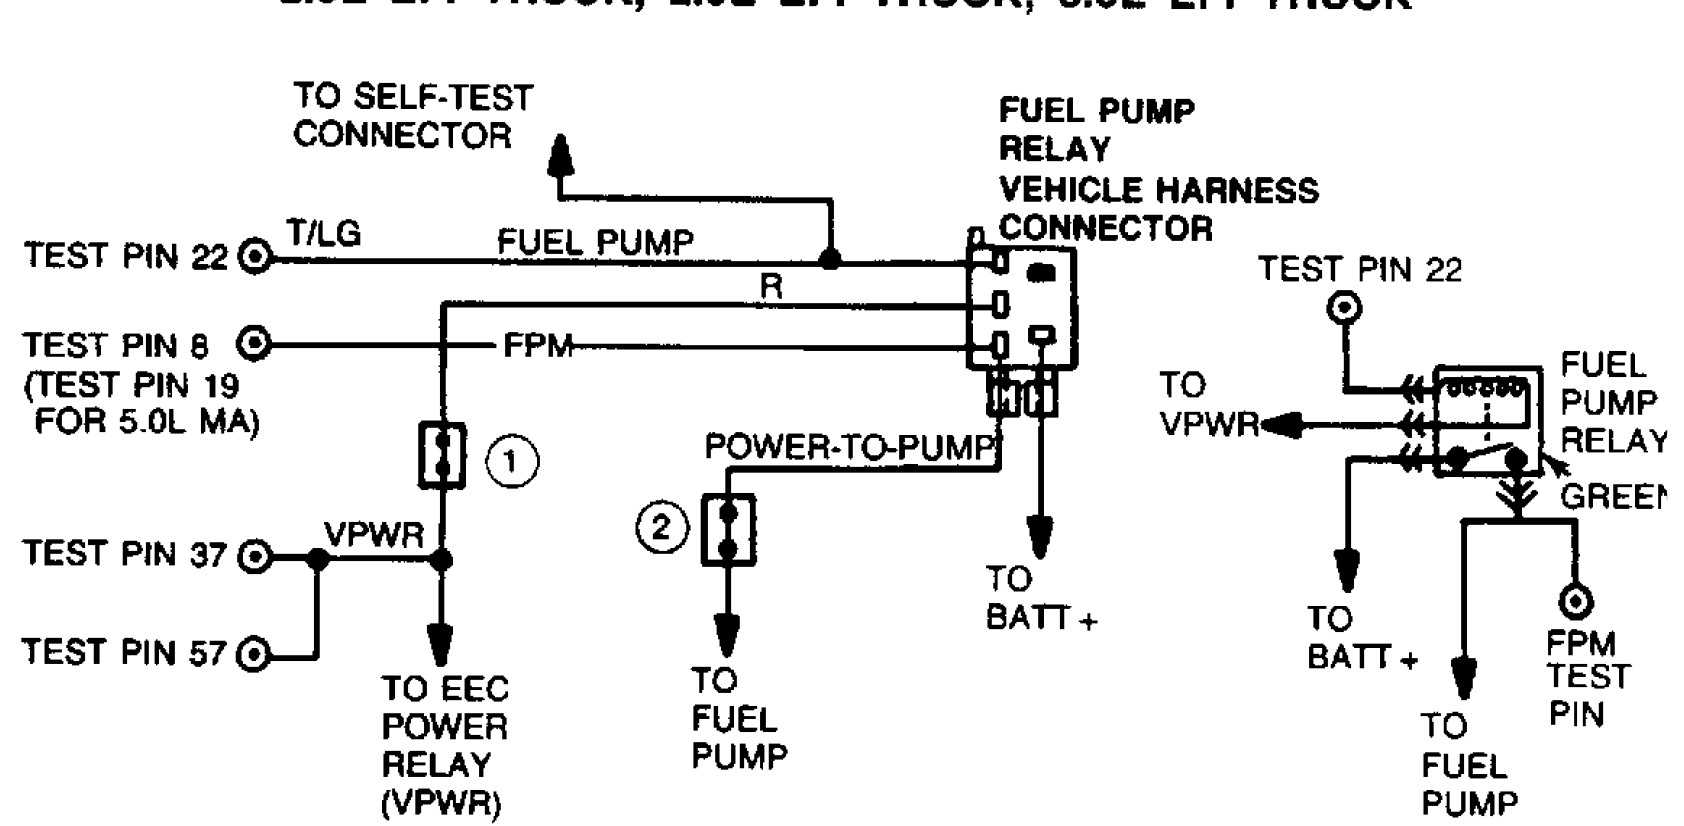 2000 ford ranger fuel line diagram auto wiring diagram preview 1986 Ford Ranger Wiring Diagram